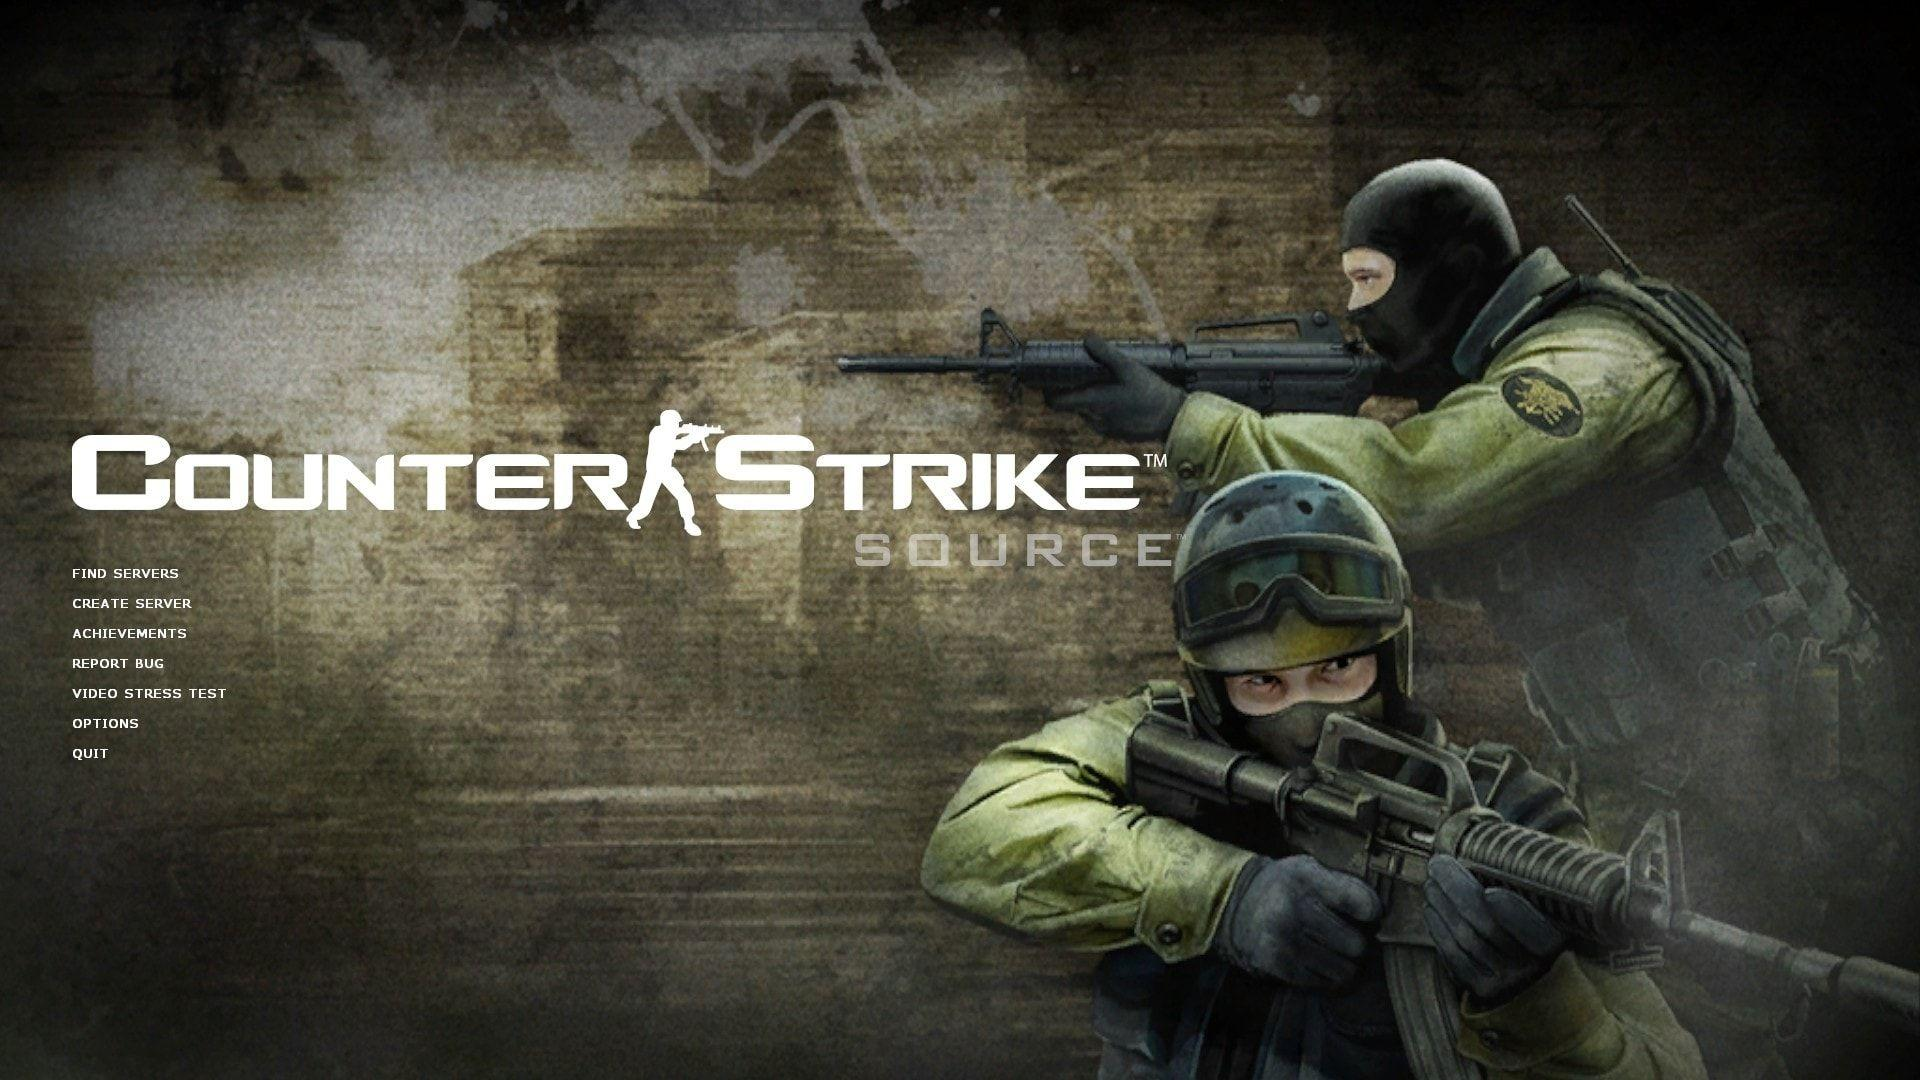 Counter-Strike: Source HD Desktop Wallpapers | 7wallpapers.net